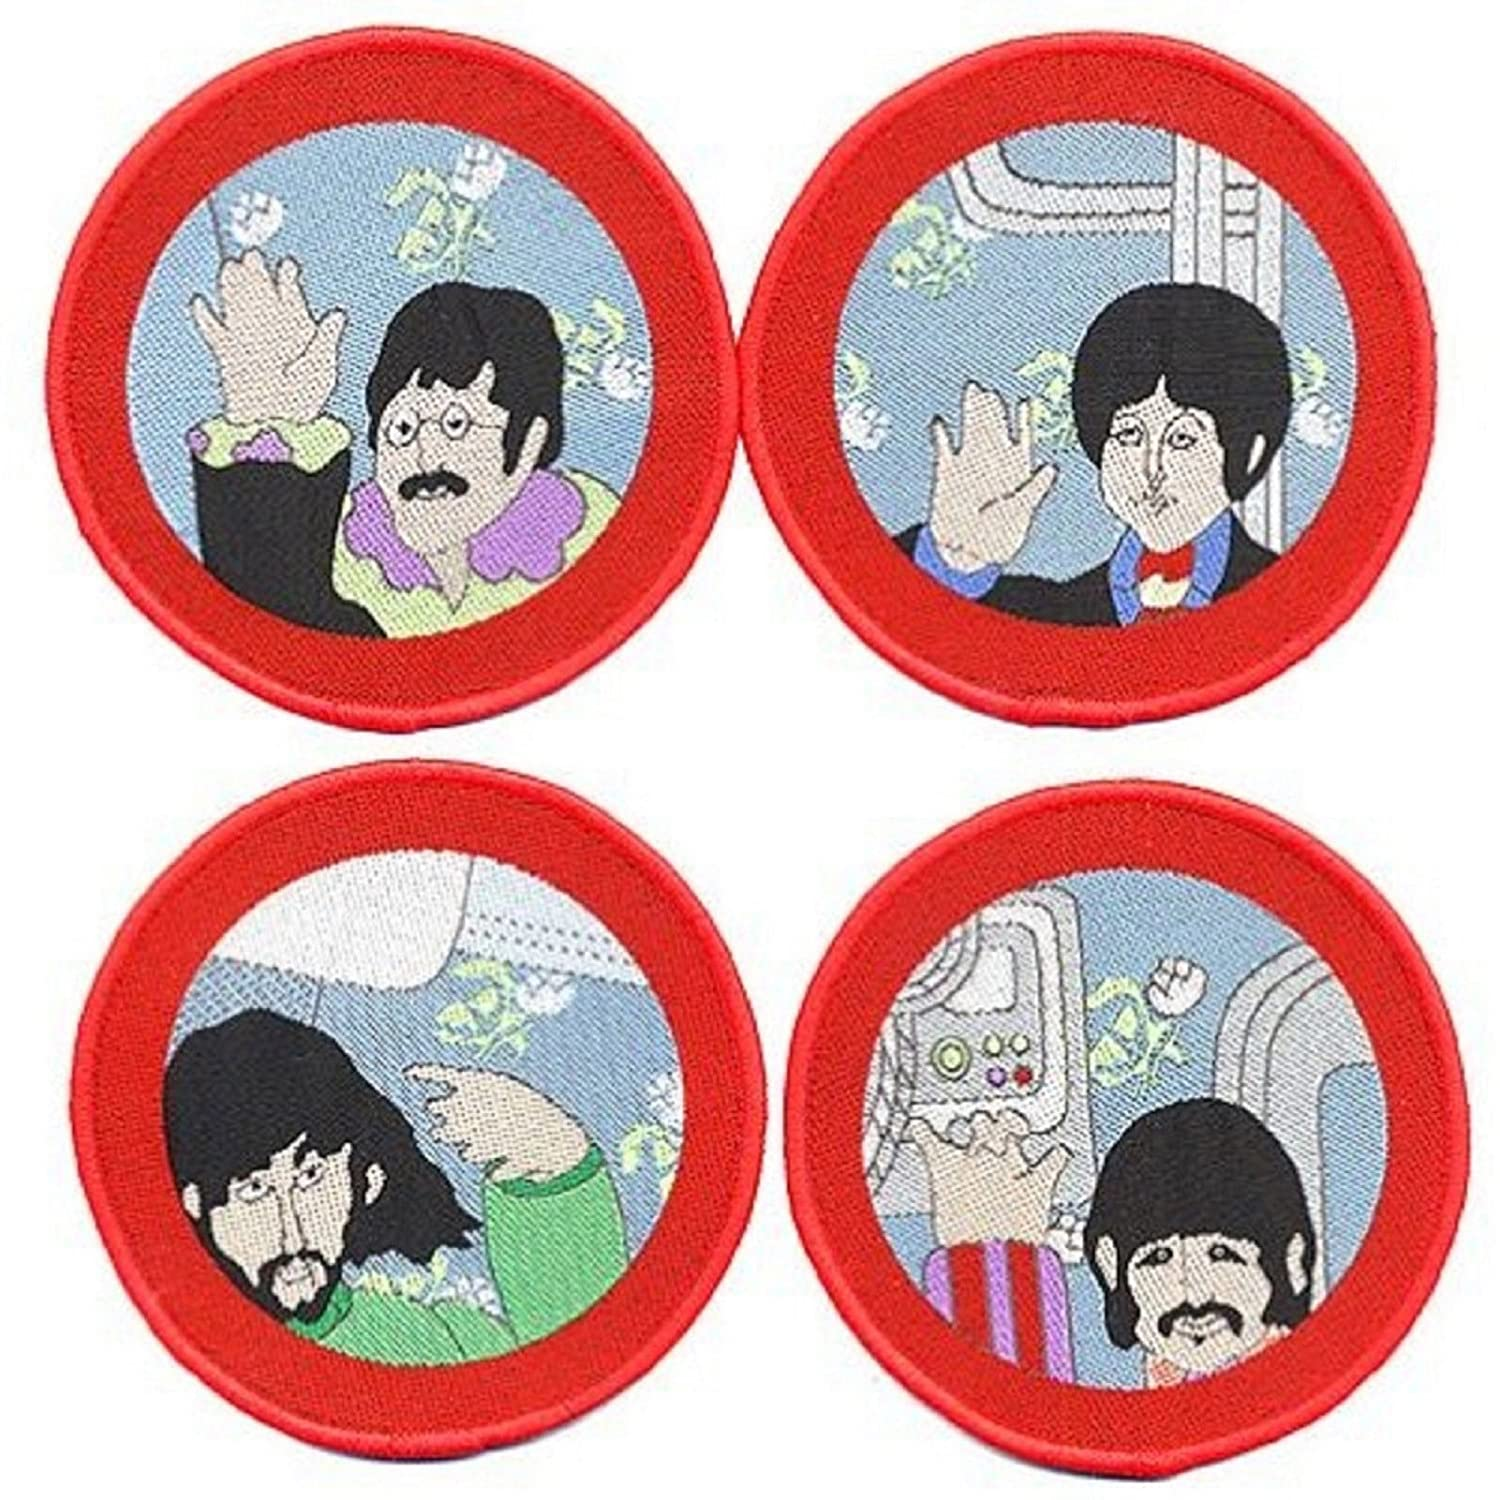 The Beatles Yellow Submarine Portholes Official 4x Circular Patch Set (8cm) Officially Liscenced Product